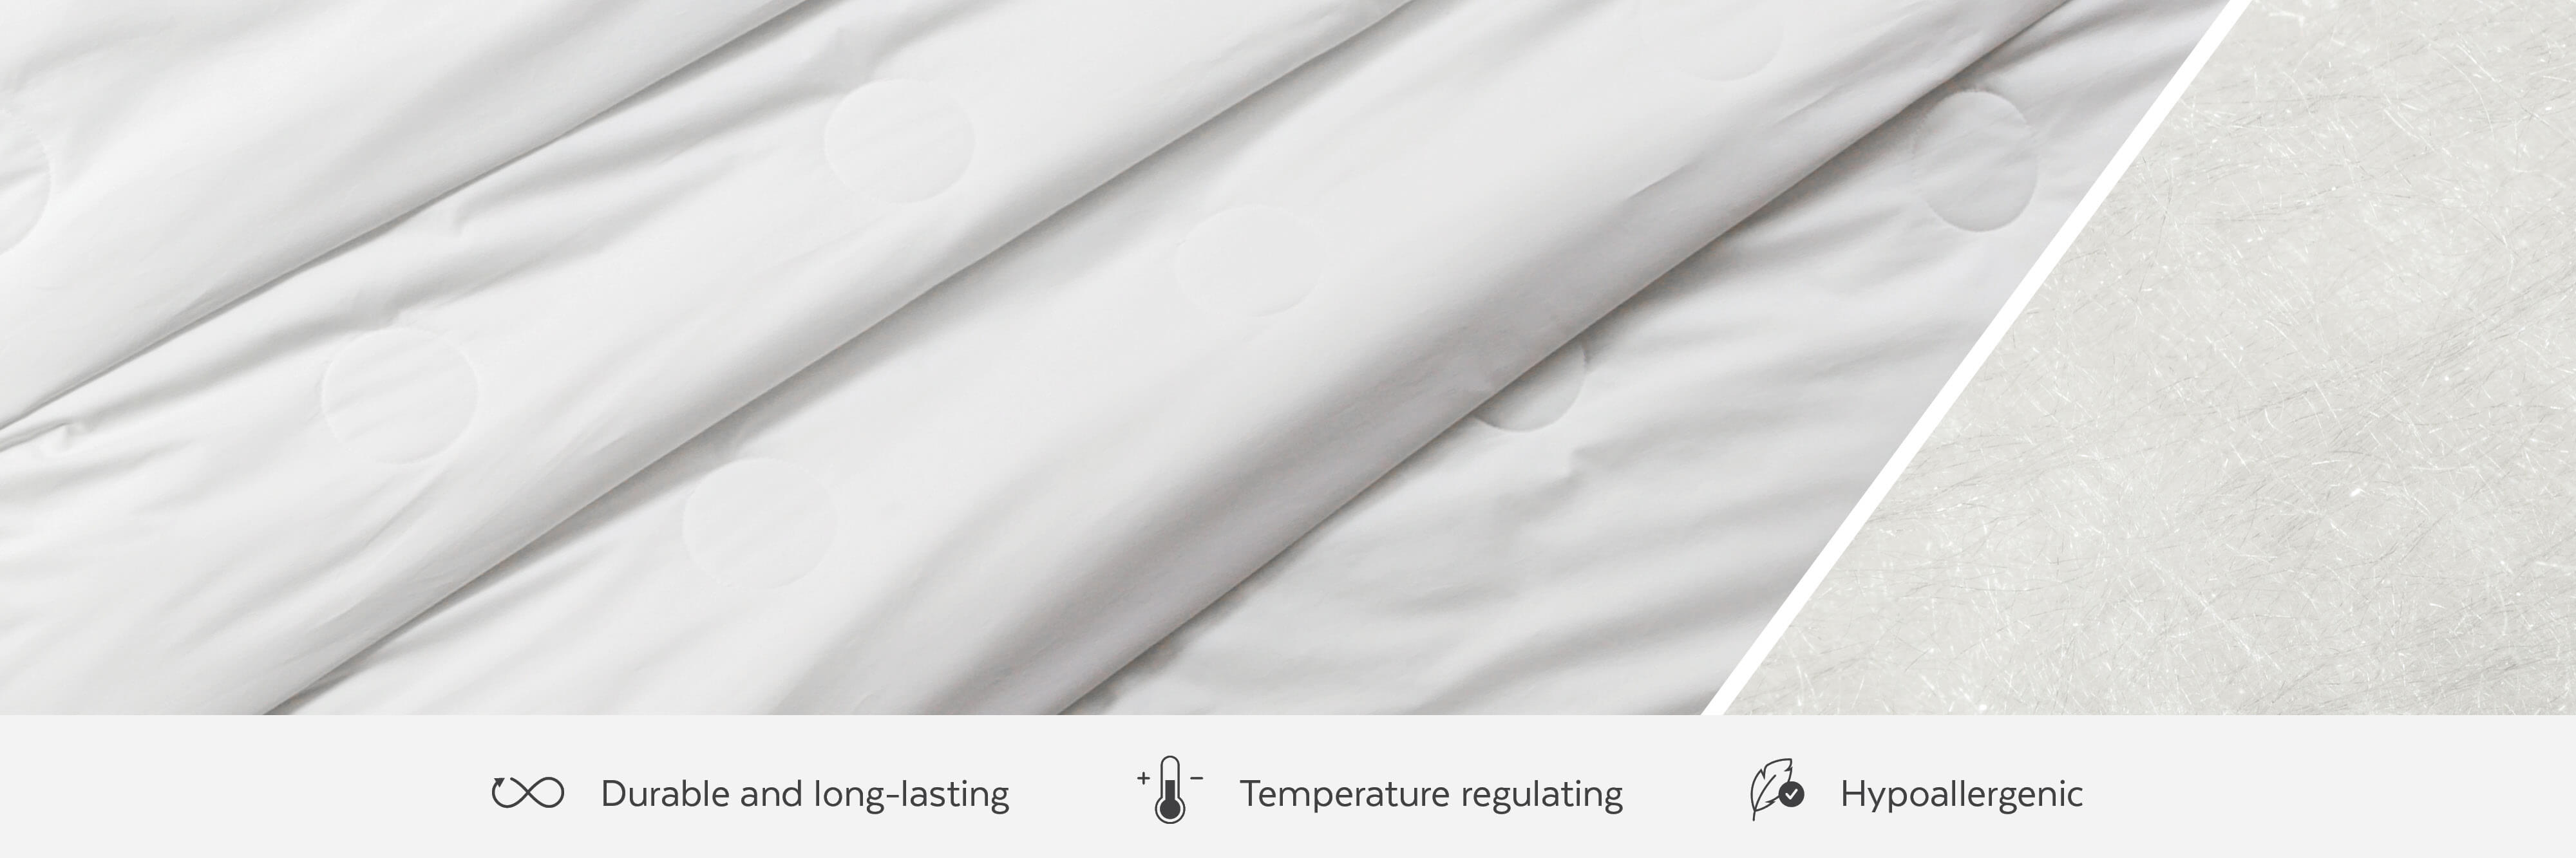 Silk duvets are durable, long-lasting, temperature regulating, and hypoallergenic.